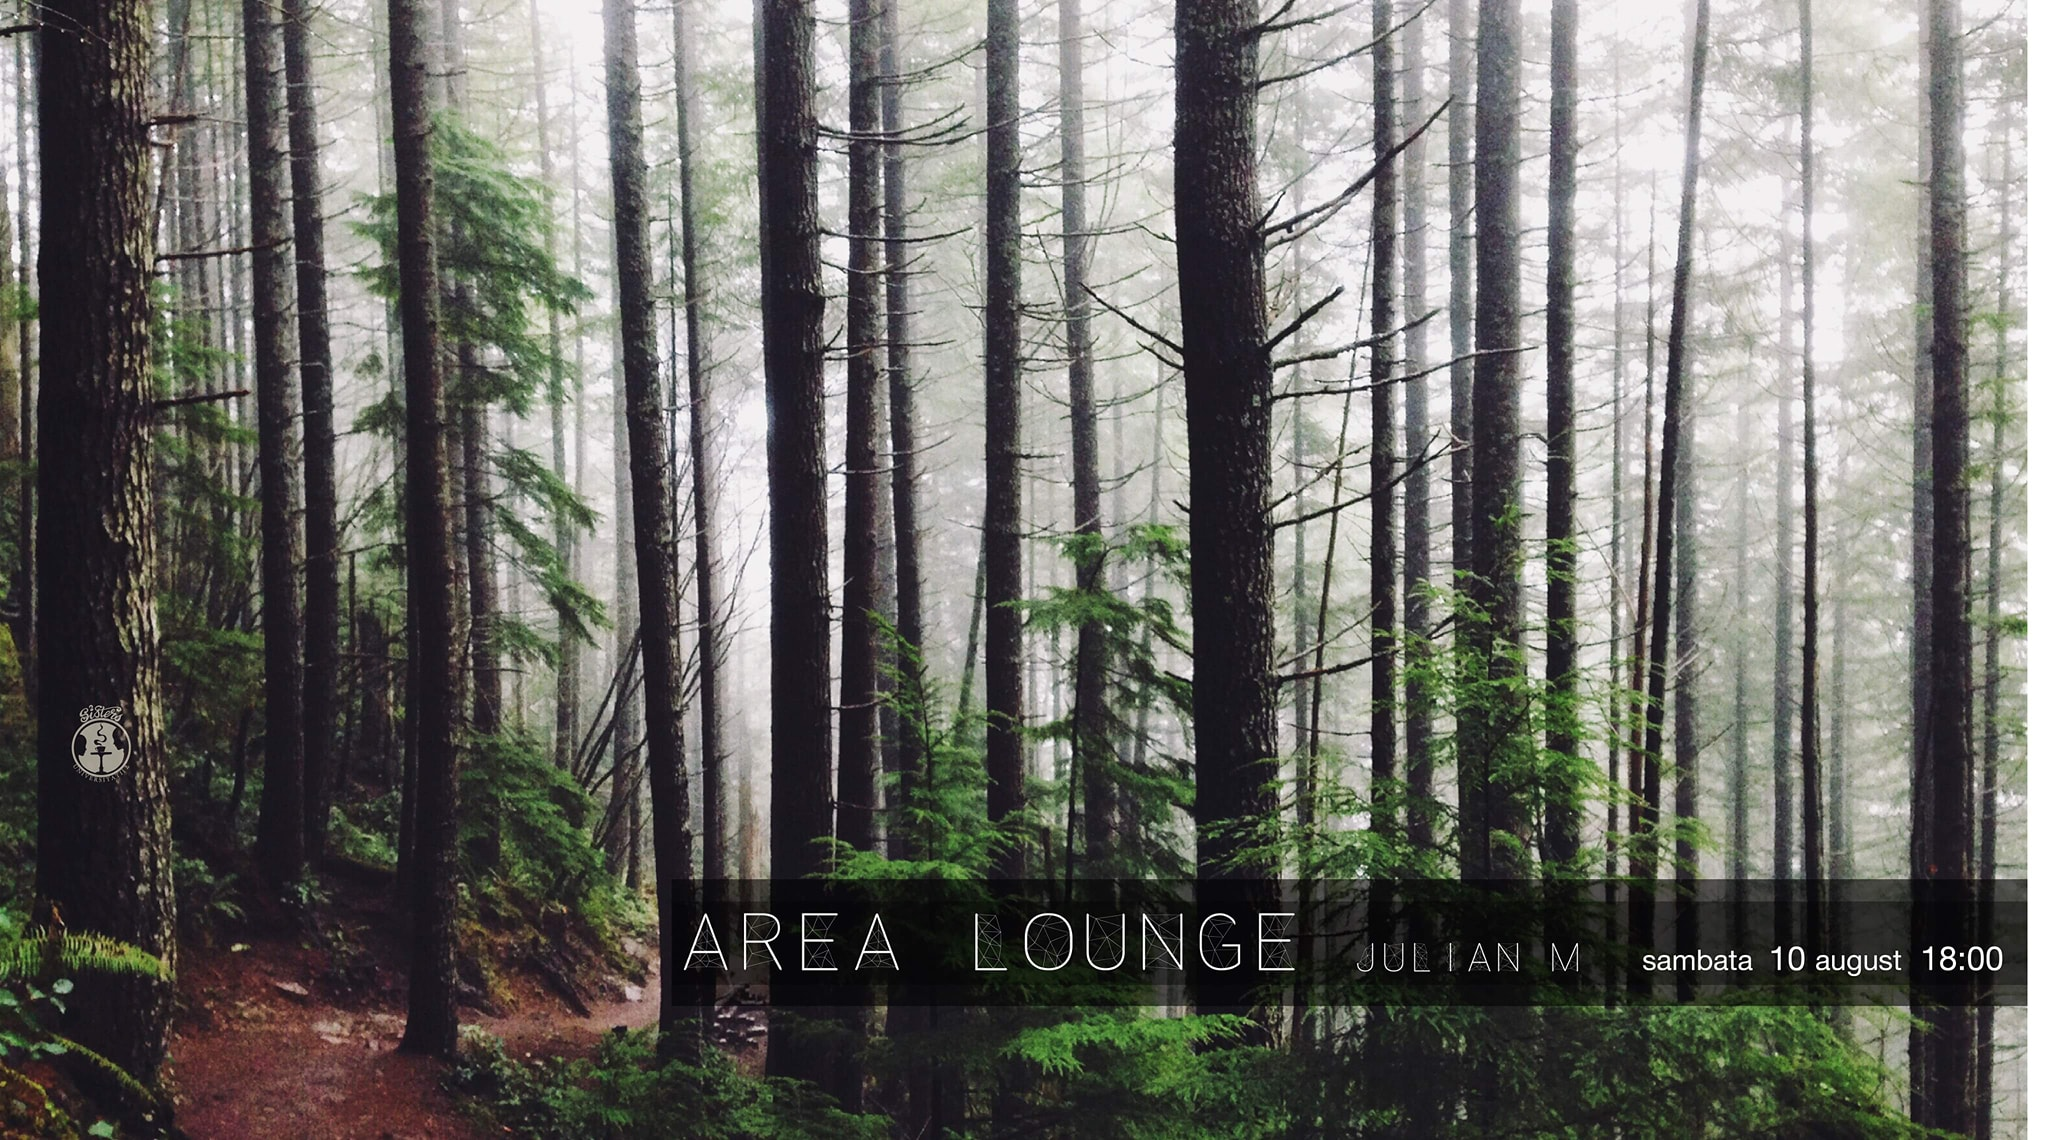 Area Lounge with Julian M